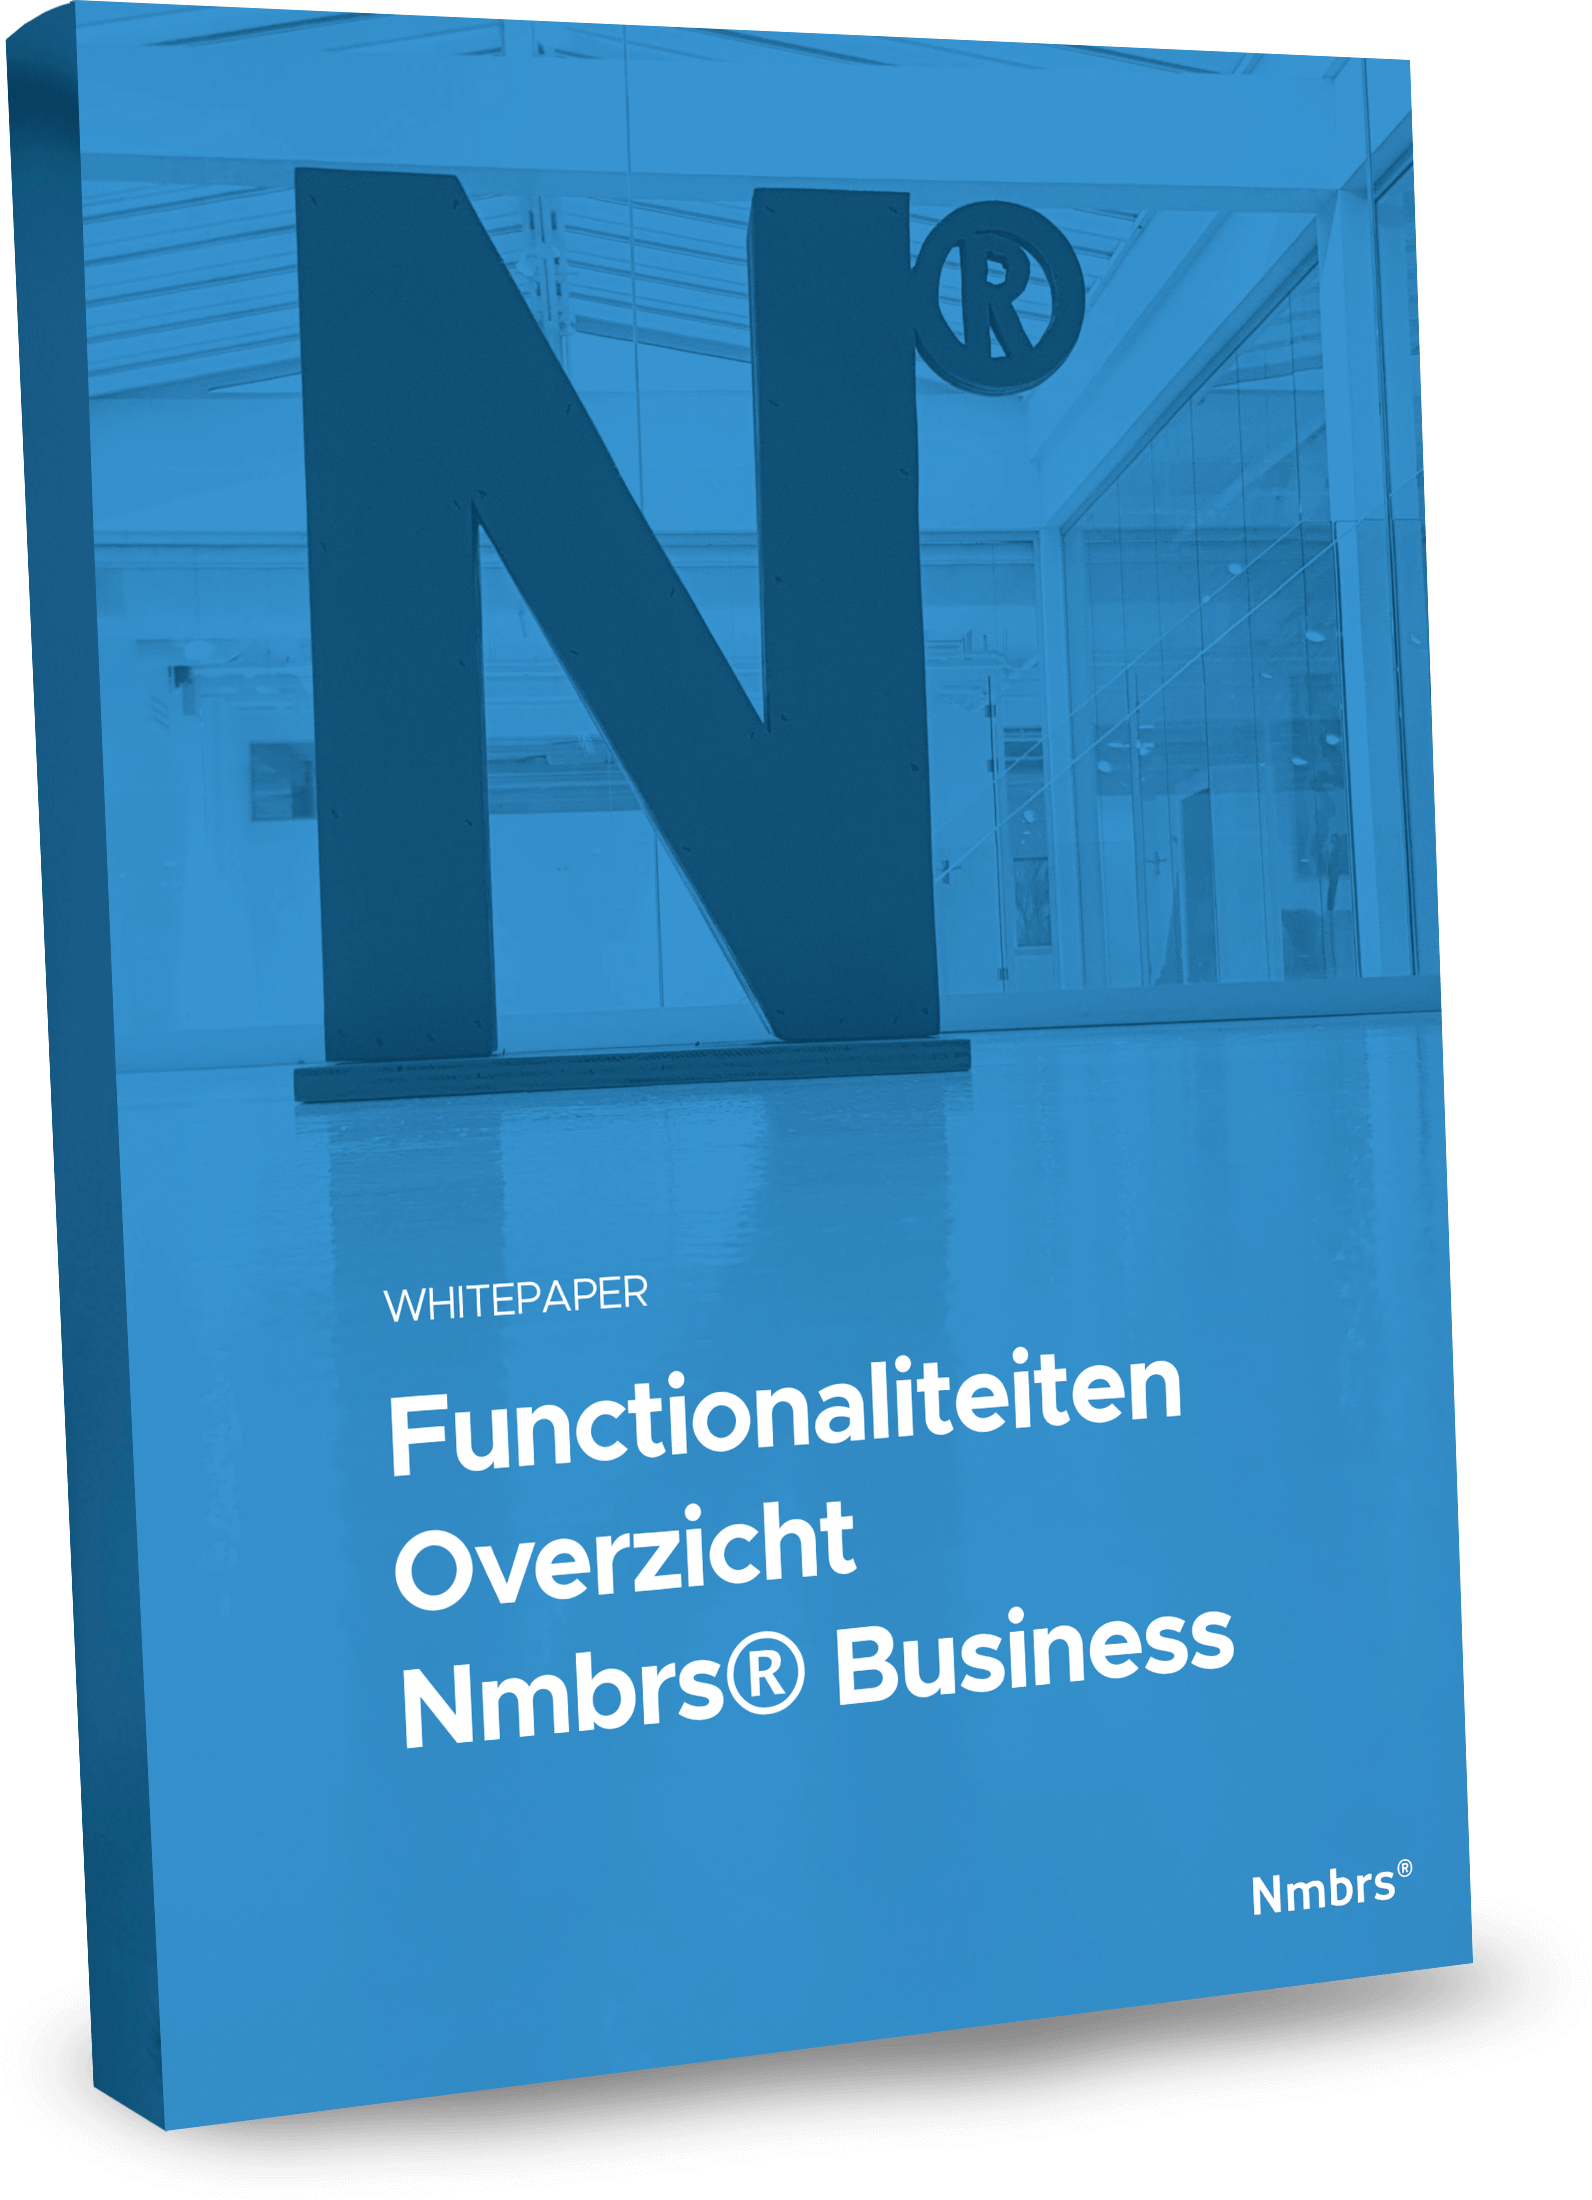 whitepaper-Nmbrs_Feature_Overview_Business